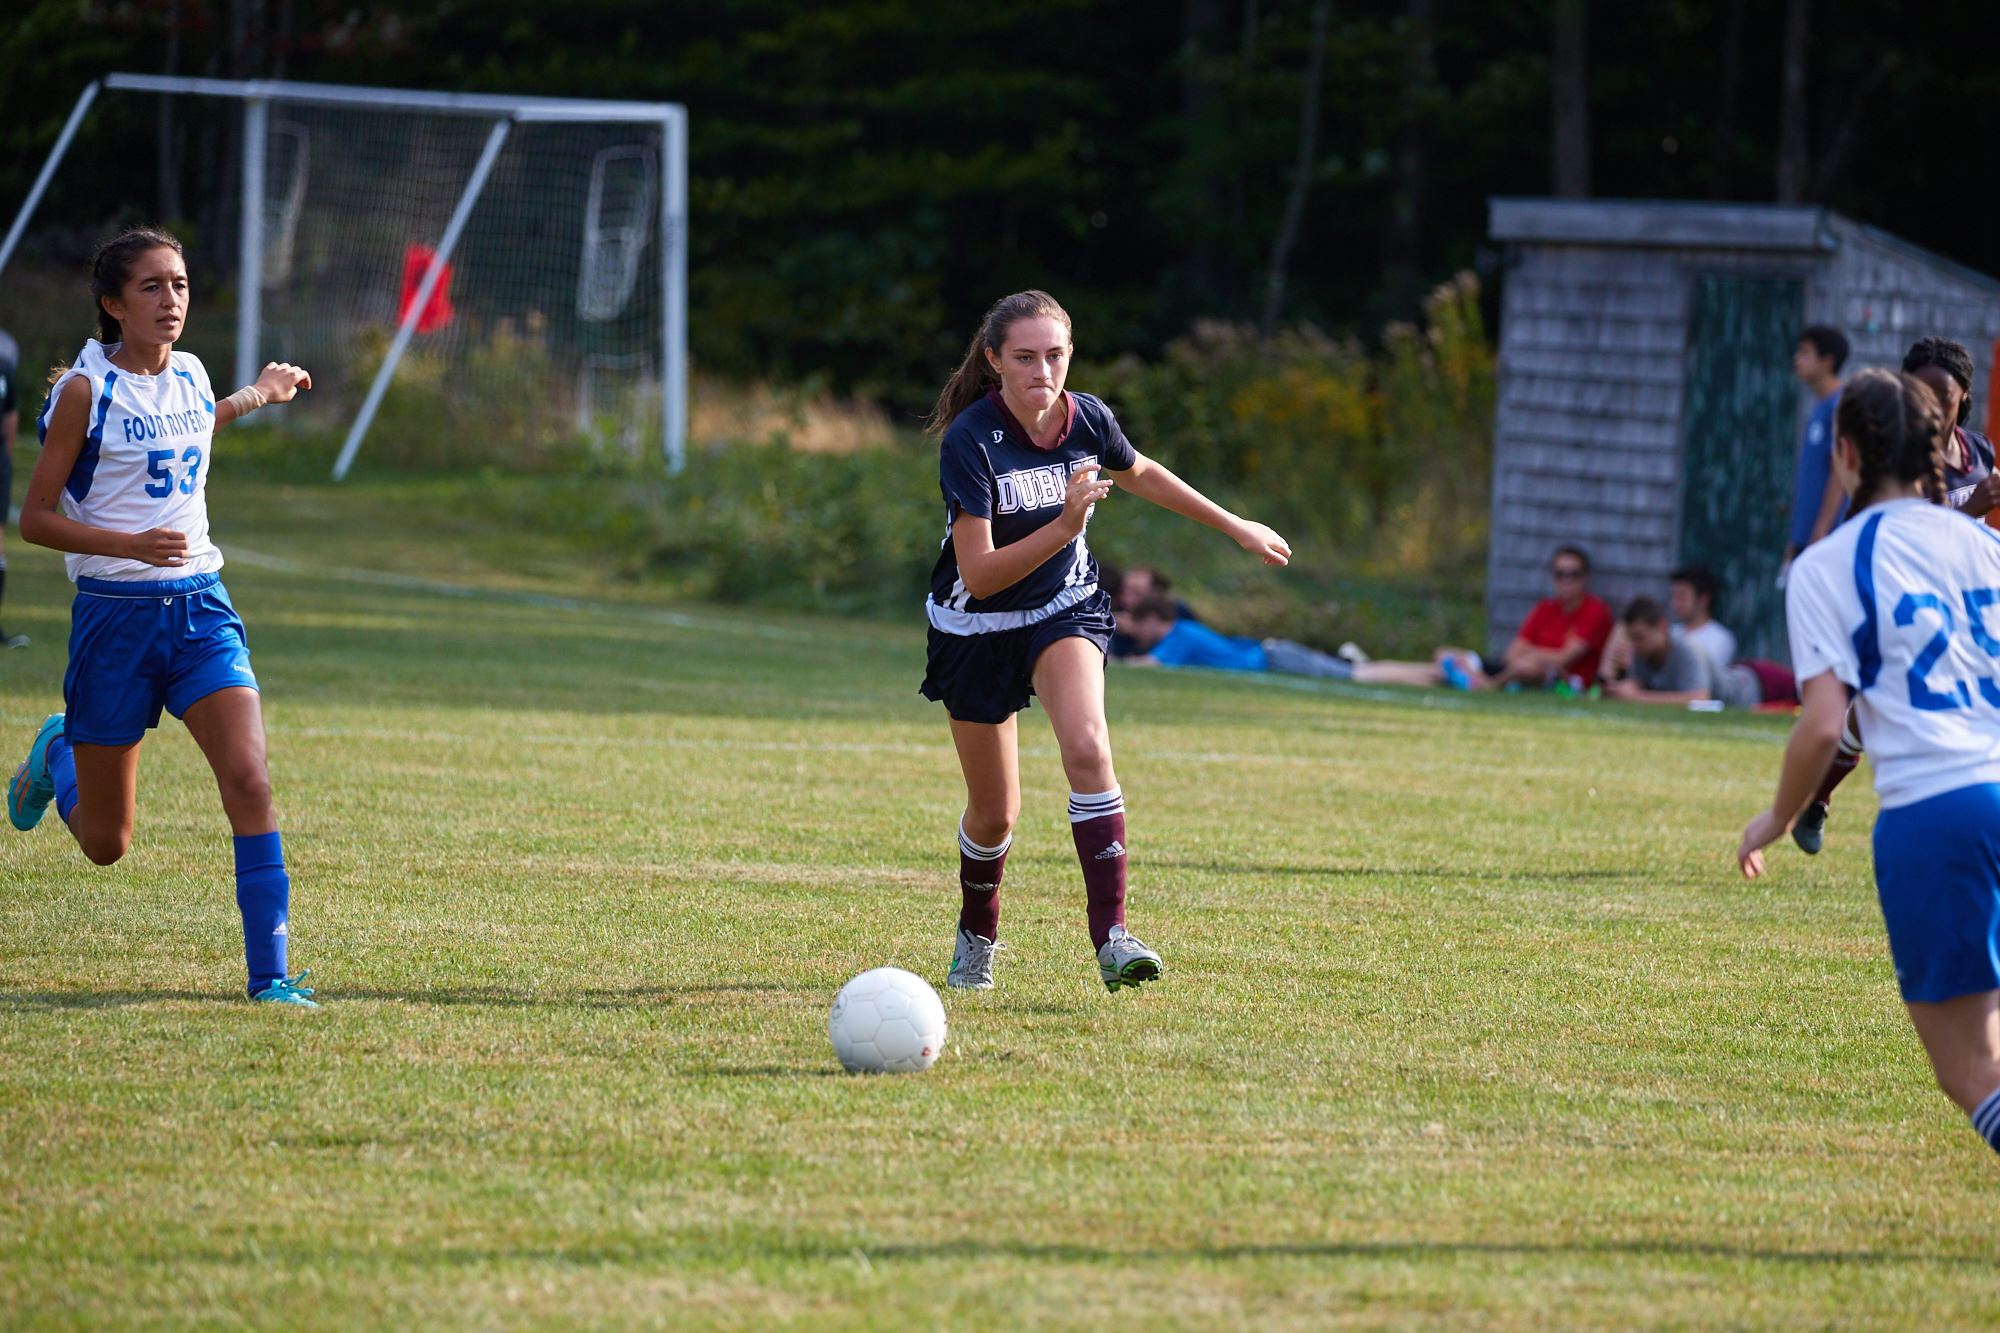 Girls Varsity Soccer vs. Four Rivers Charter Public School - September 23, 2016 - 41551- 000142.jpg